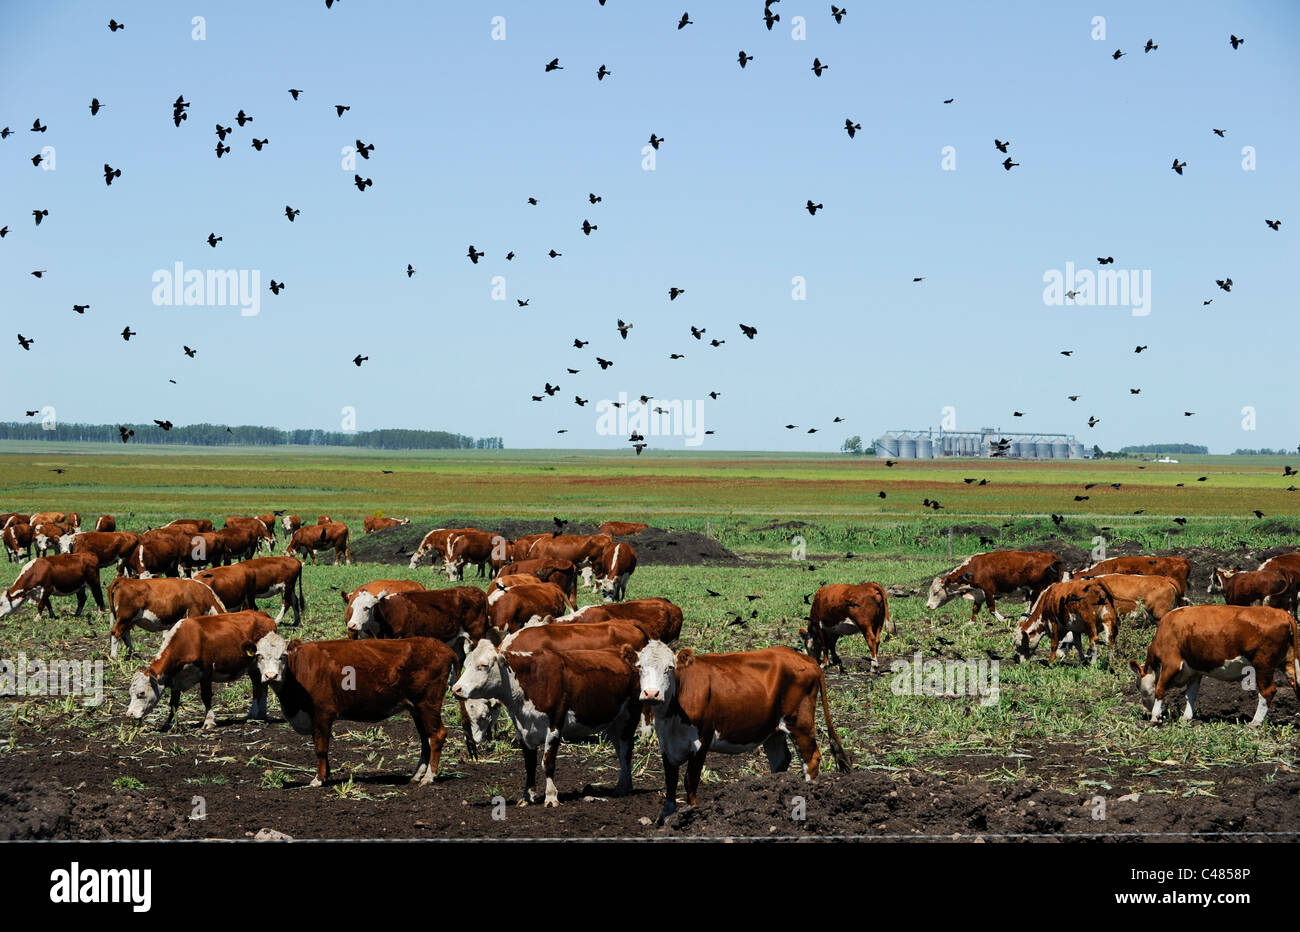 URUGUAY agriculture and livestock , cow cattle in feed lot - Stock Image